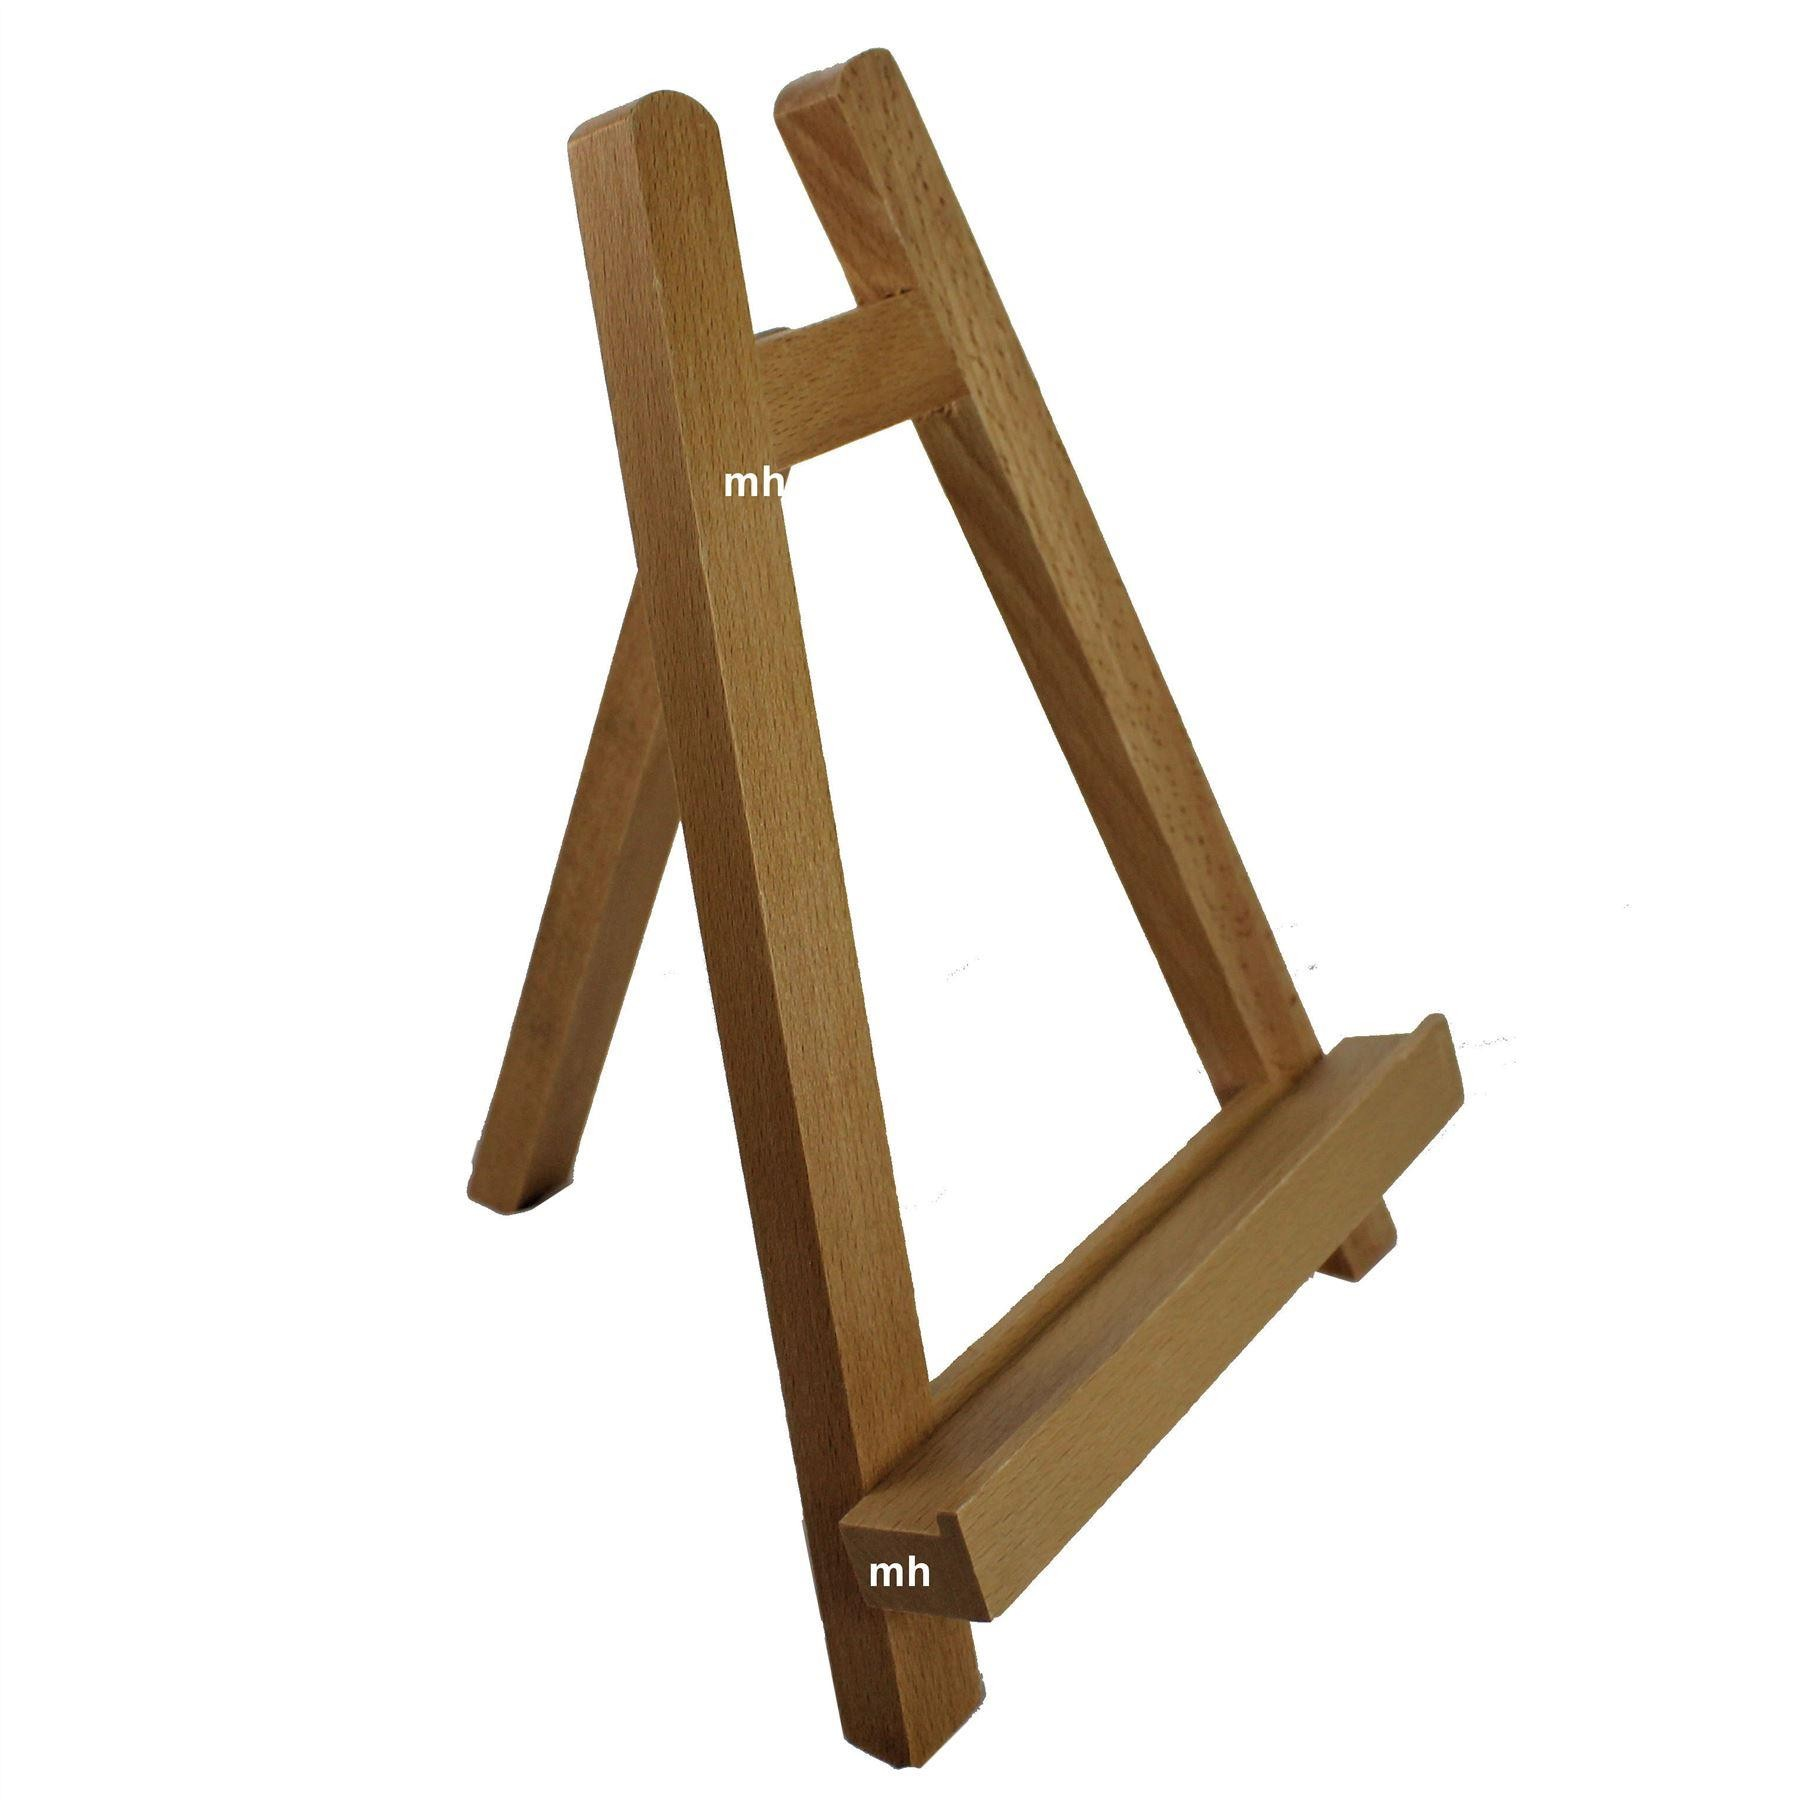 Loxley Gwent A-frame wooden display tabletop easel, EL – 500